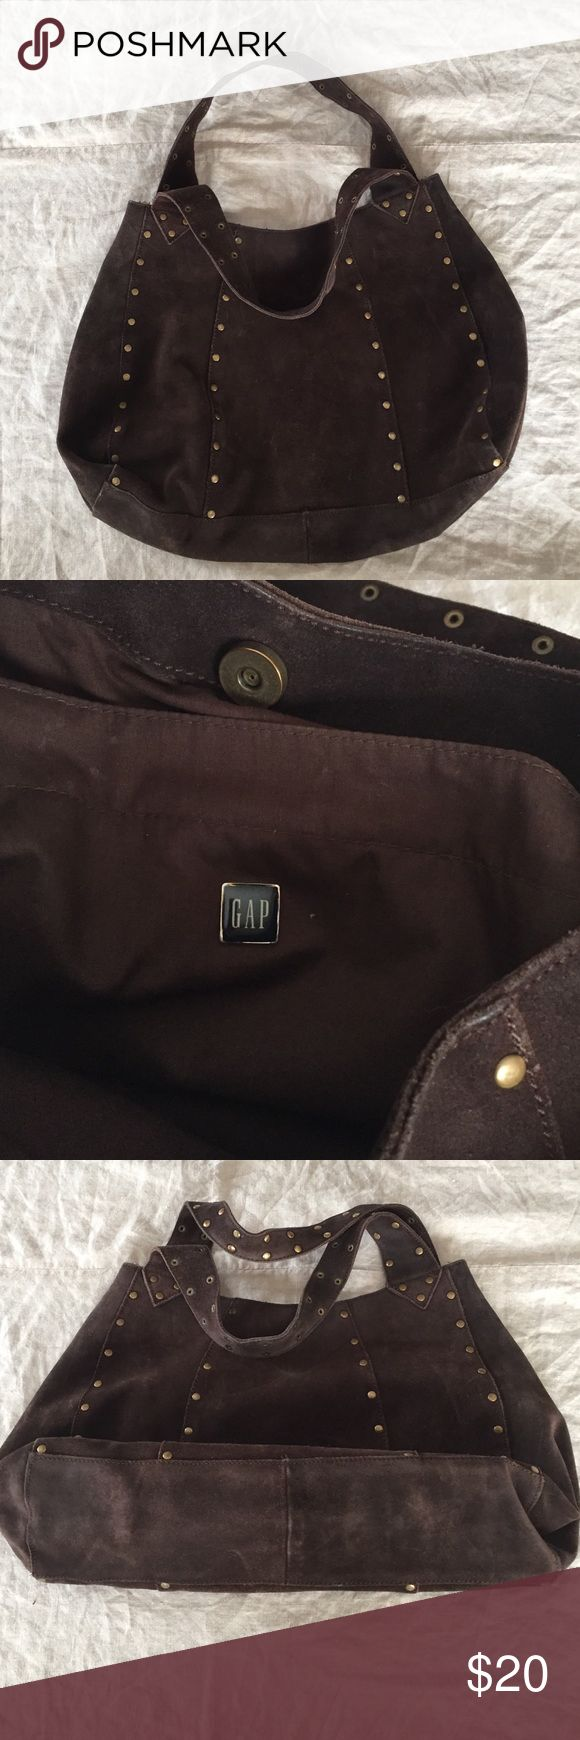 """The Gap brown suede shoulder bag. Used, brown suede Gap shoulder bag. Magnetic snap closure. Shoulder straps approx. 20"""".  Brass accents throughout bag.  Clean and odorless lining. No trades. GAP Bags Shoulder Bags"""